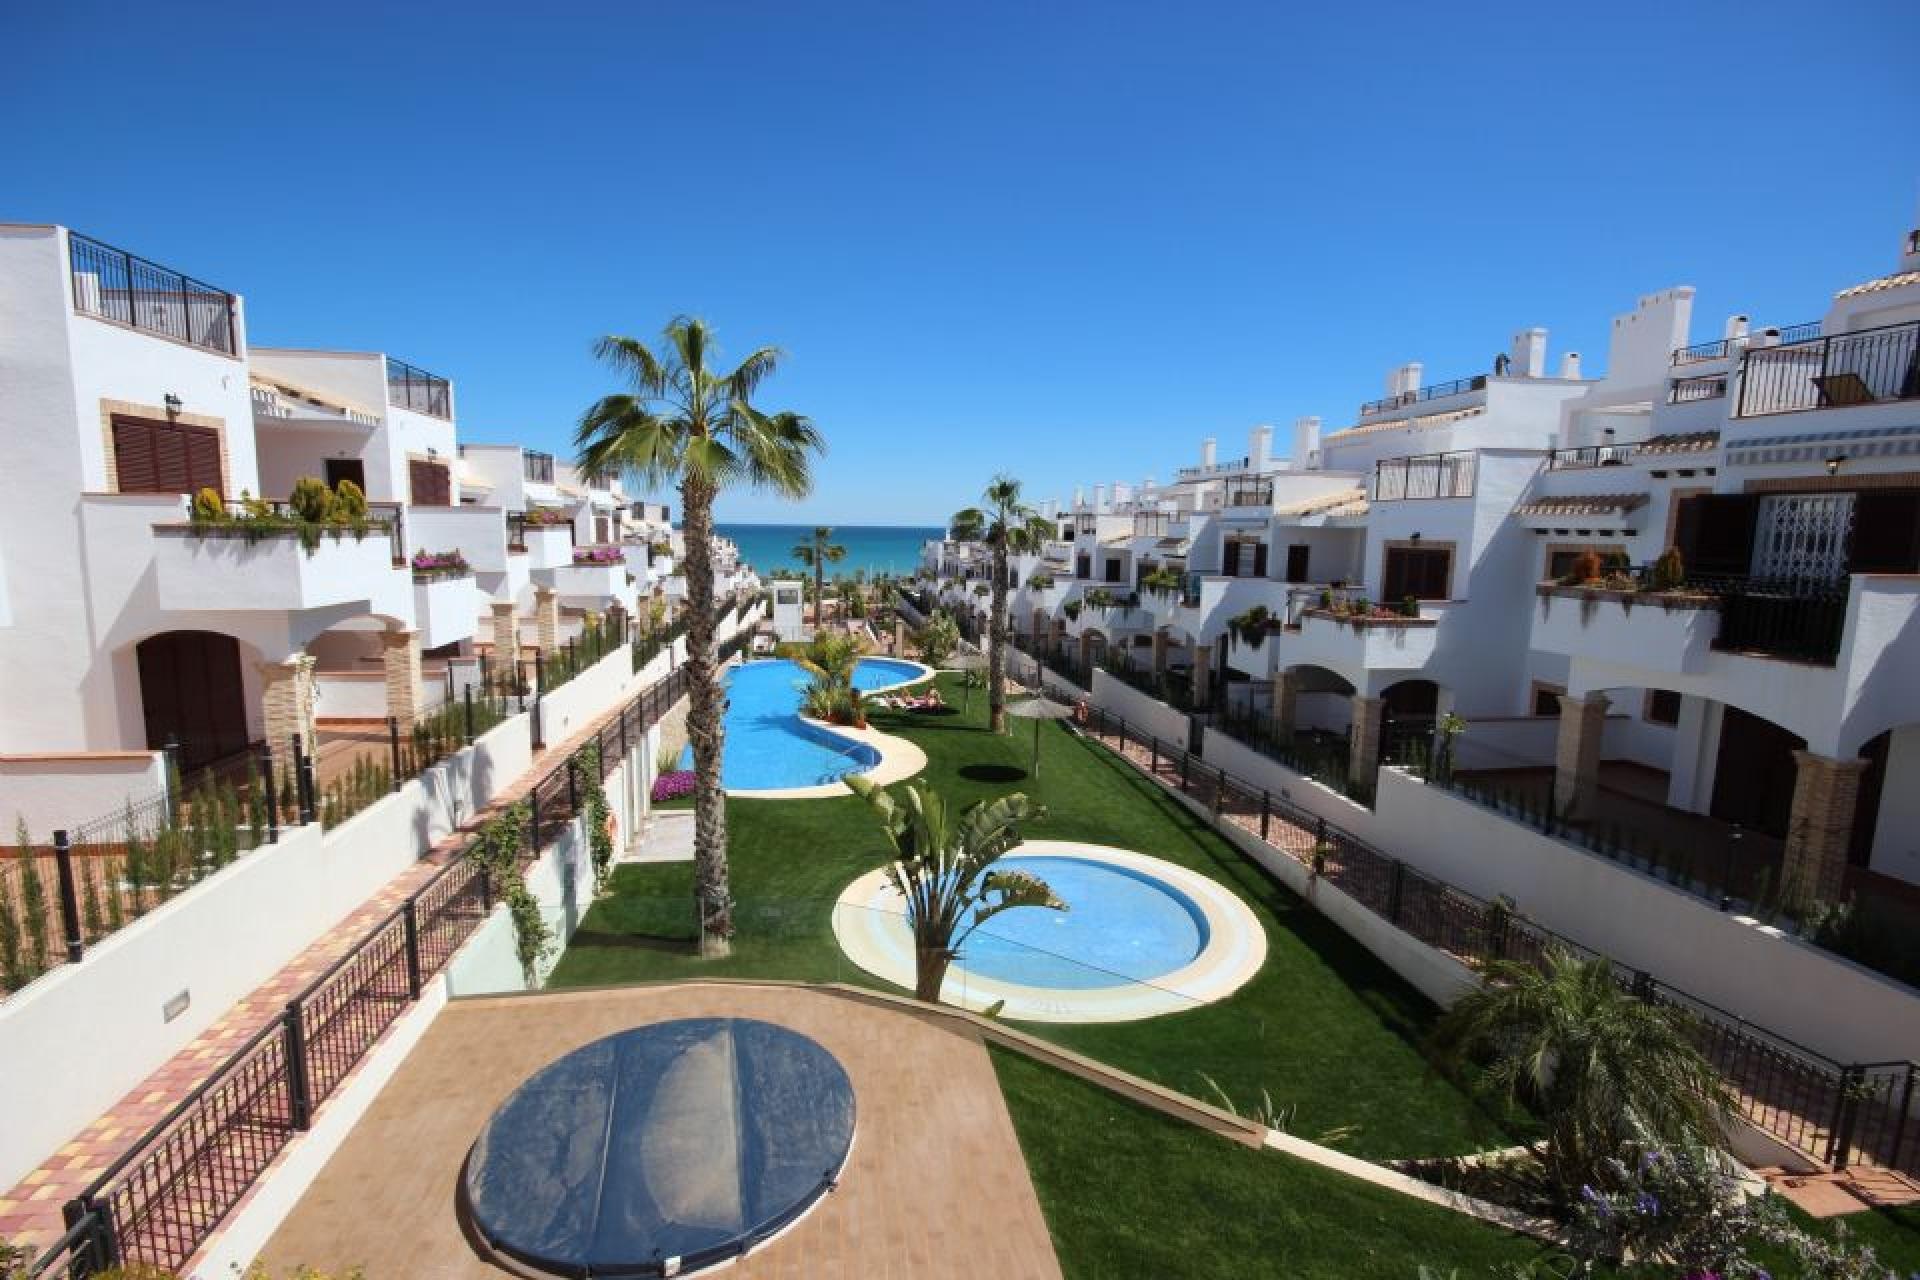 3 bedroom Duplex in Torrevieja in Medvilla Spanje